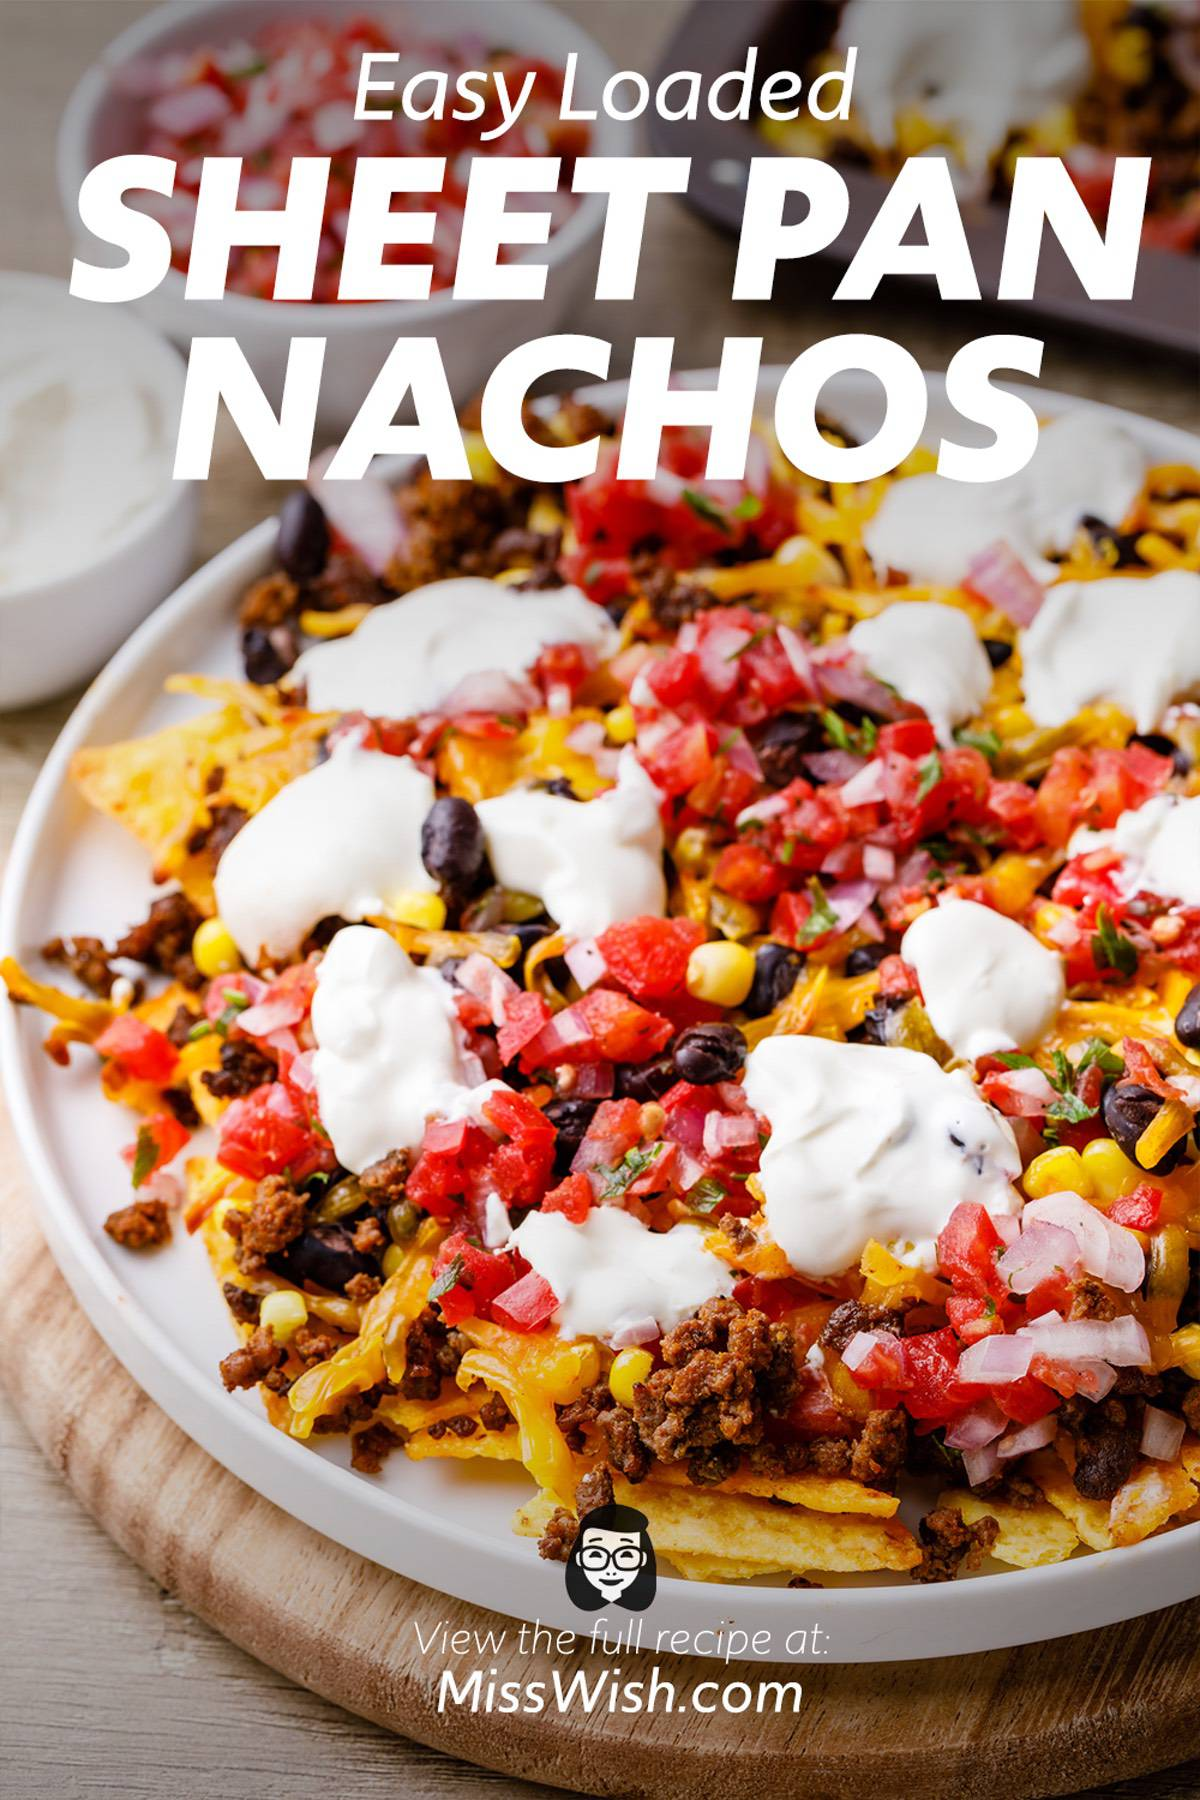 Easy Loaded Sheet Pan Nachos